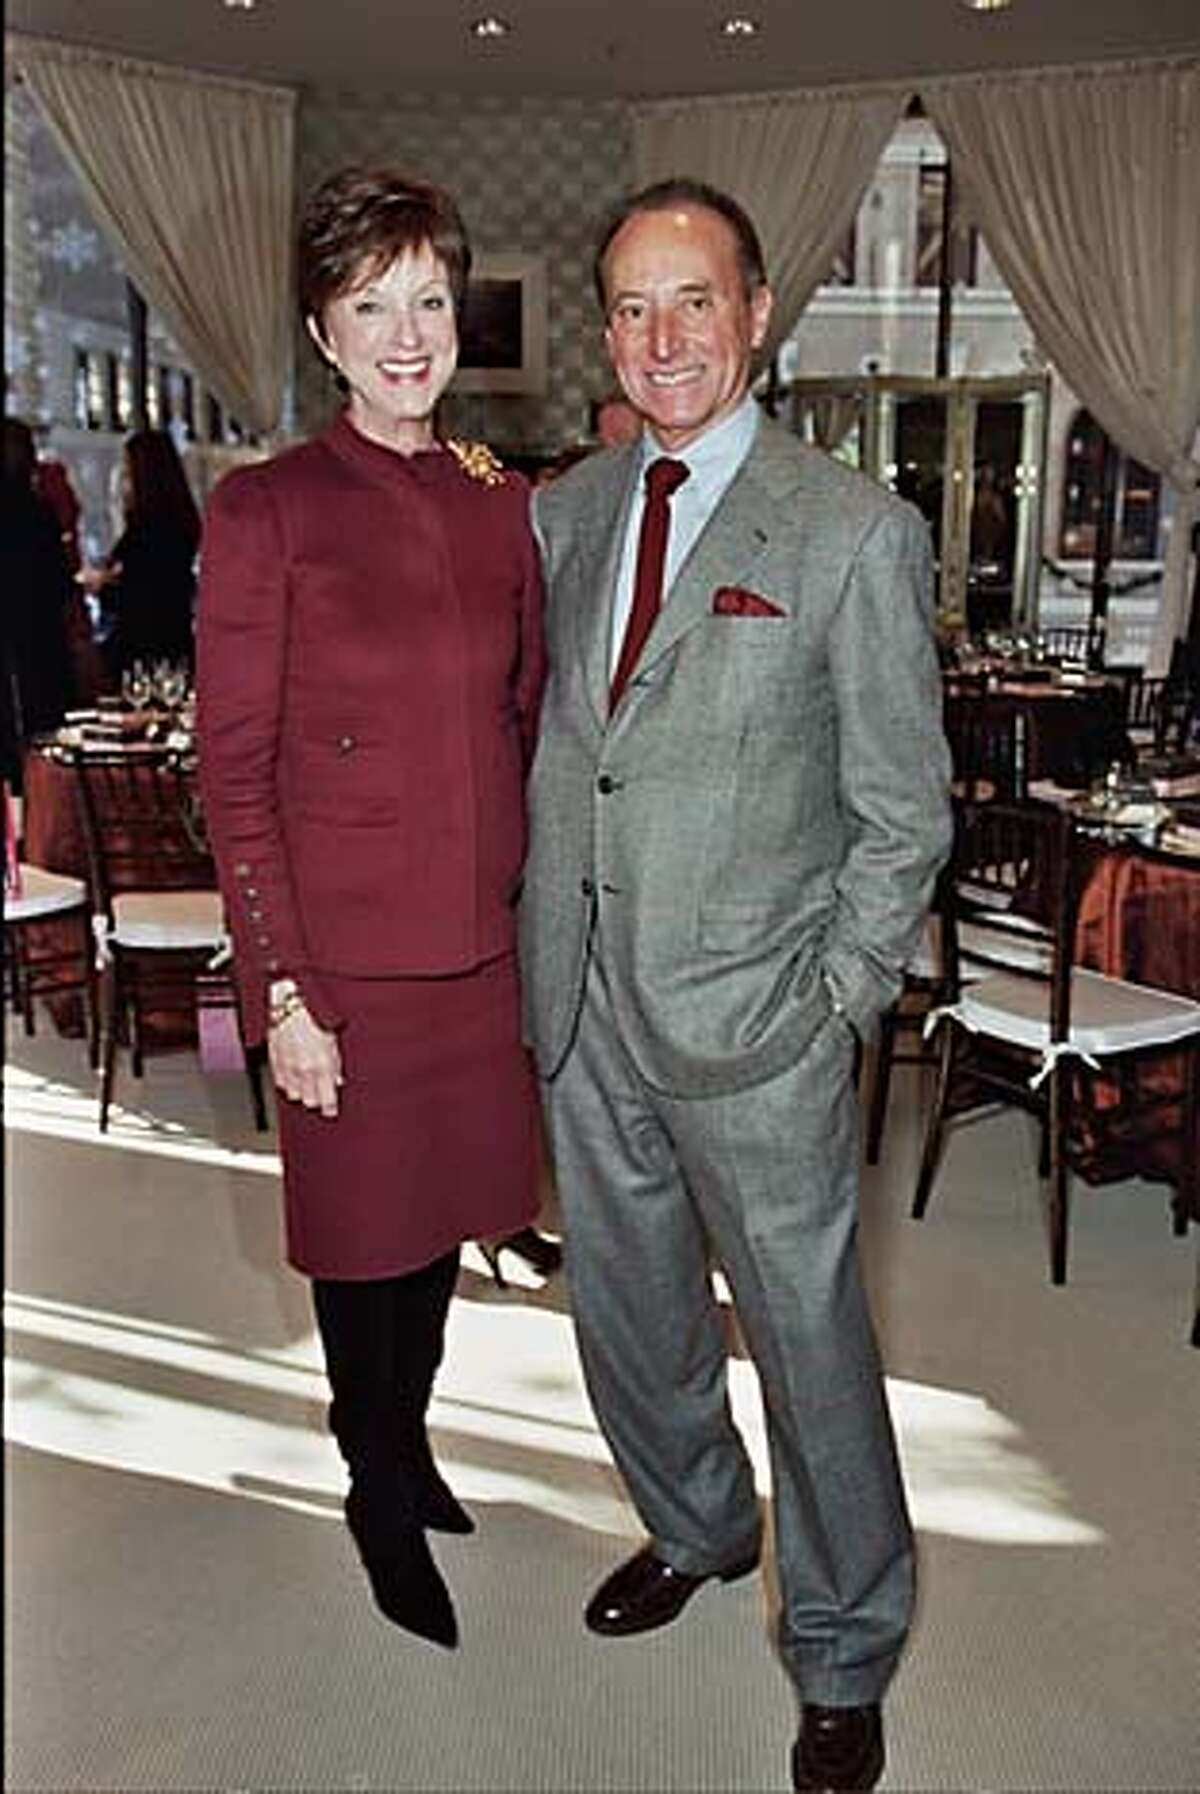 Saks' Therese Post and John Traina at the Vie Luxe launch.